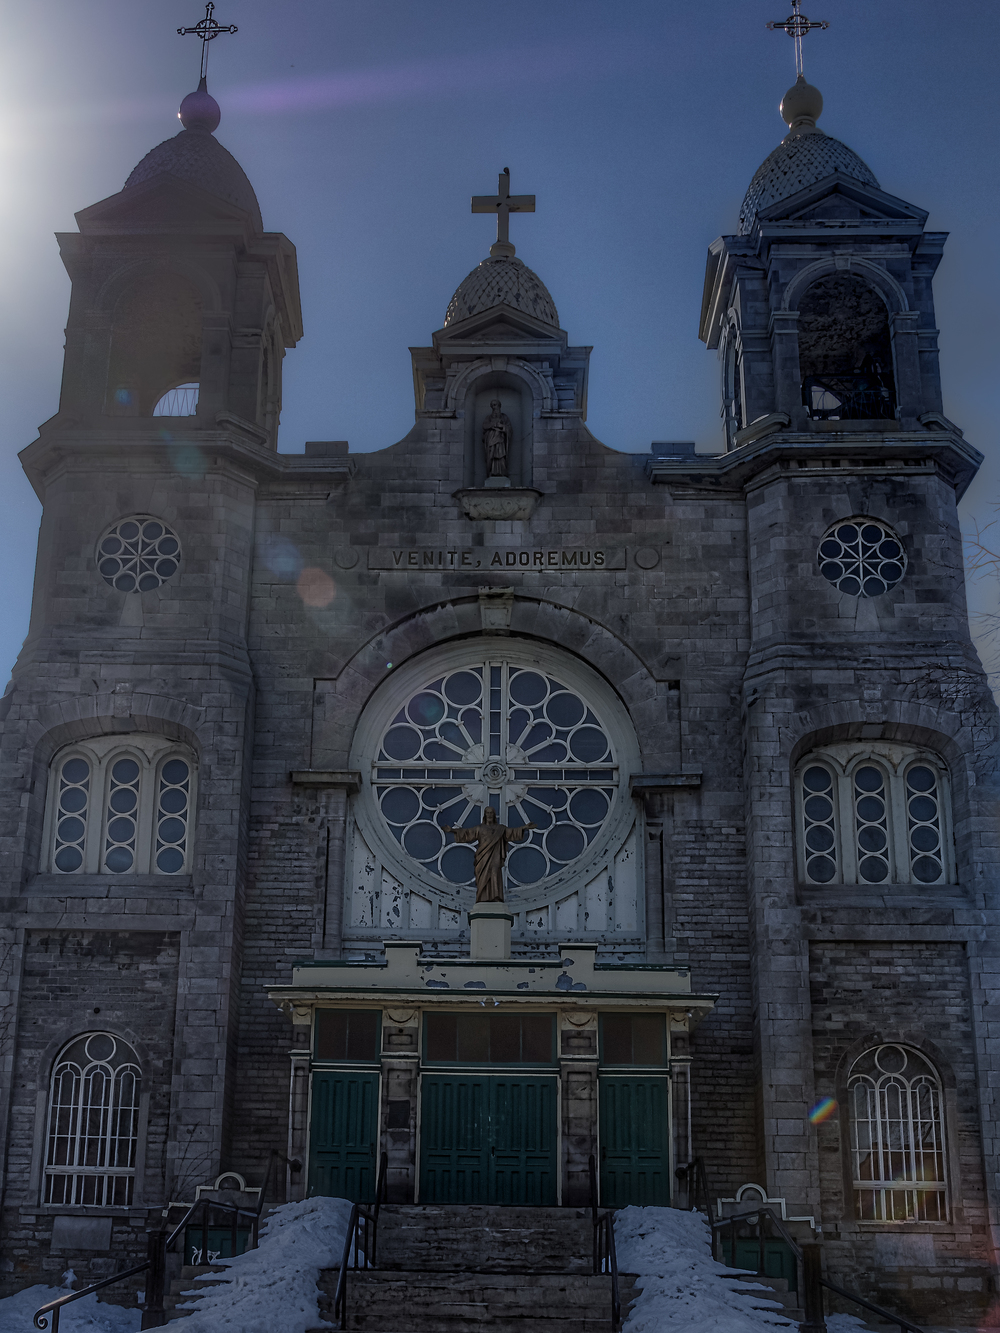 20130309_Churches Verdun__MG_9723hdr-M.jpg